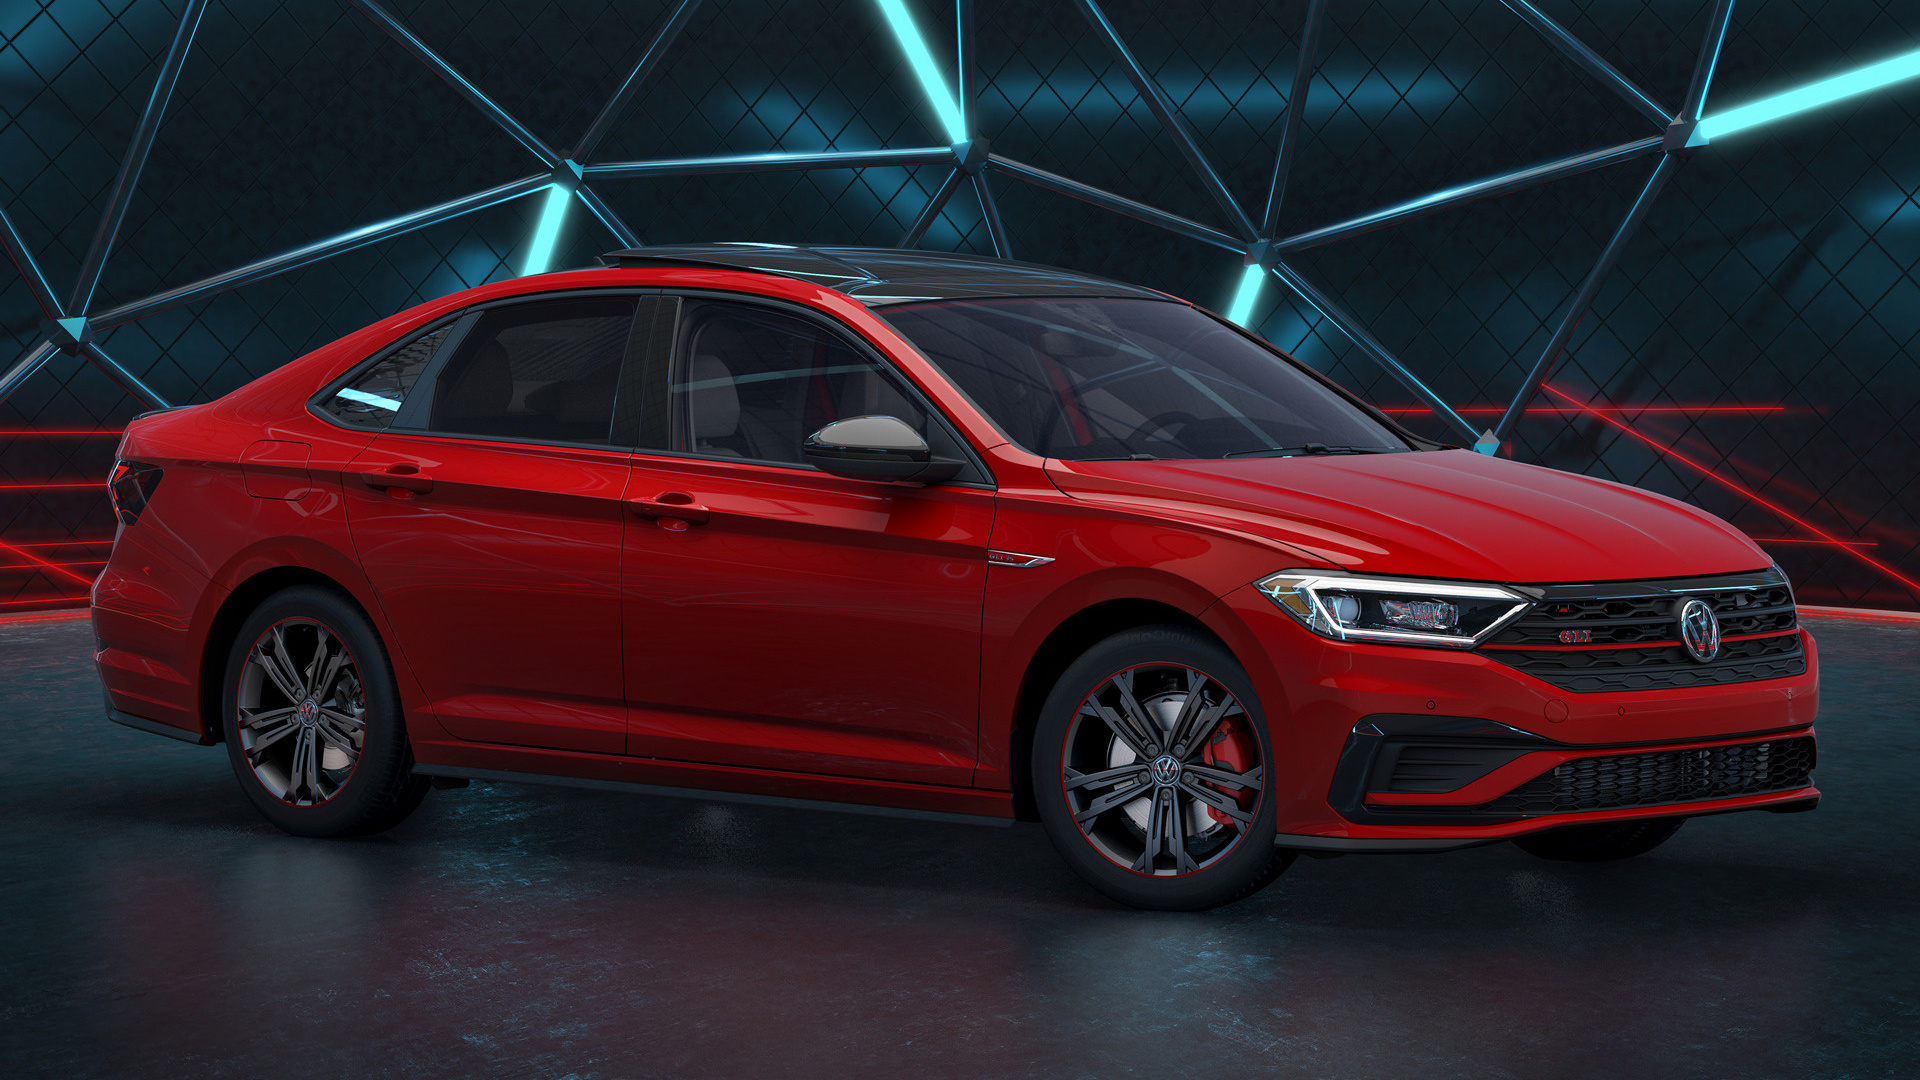 Hd Car Wallpapers Subaru 2019 Volkswagen Jetta Gli 35th Anniversary Edition Mx